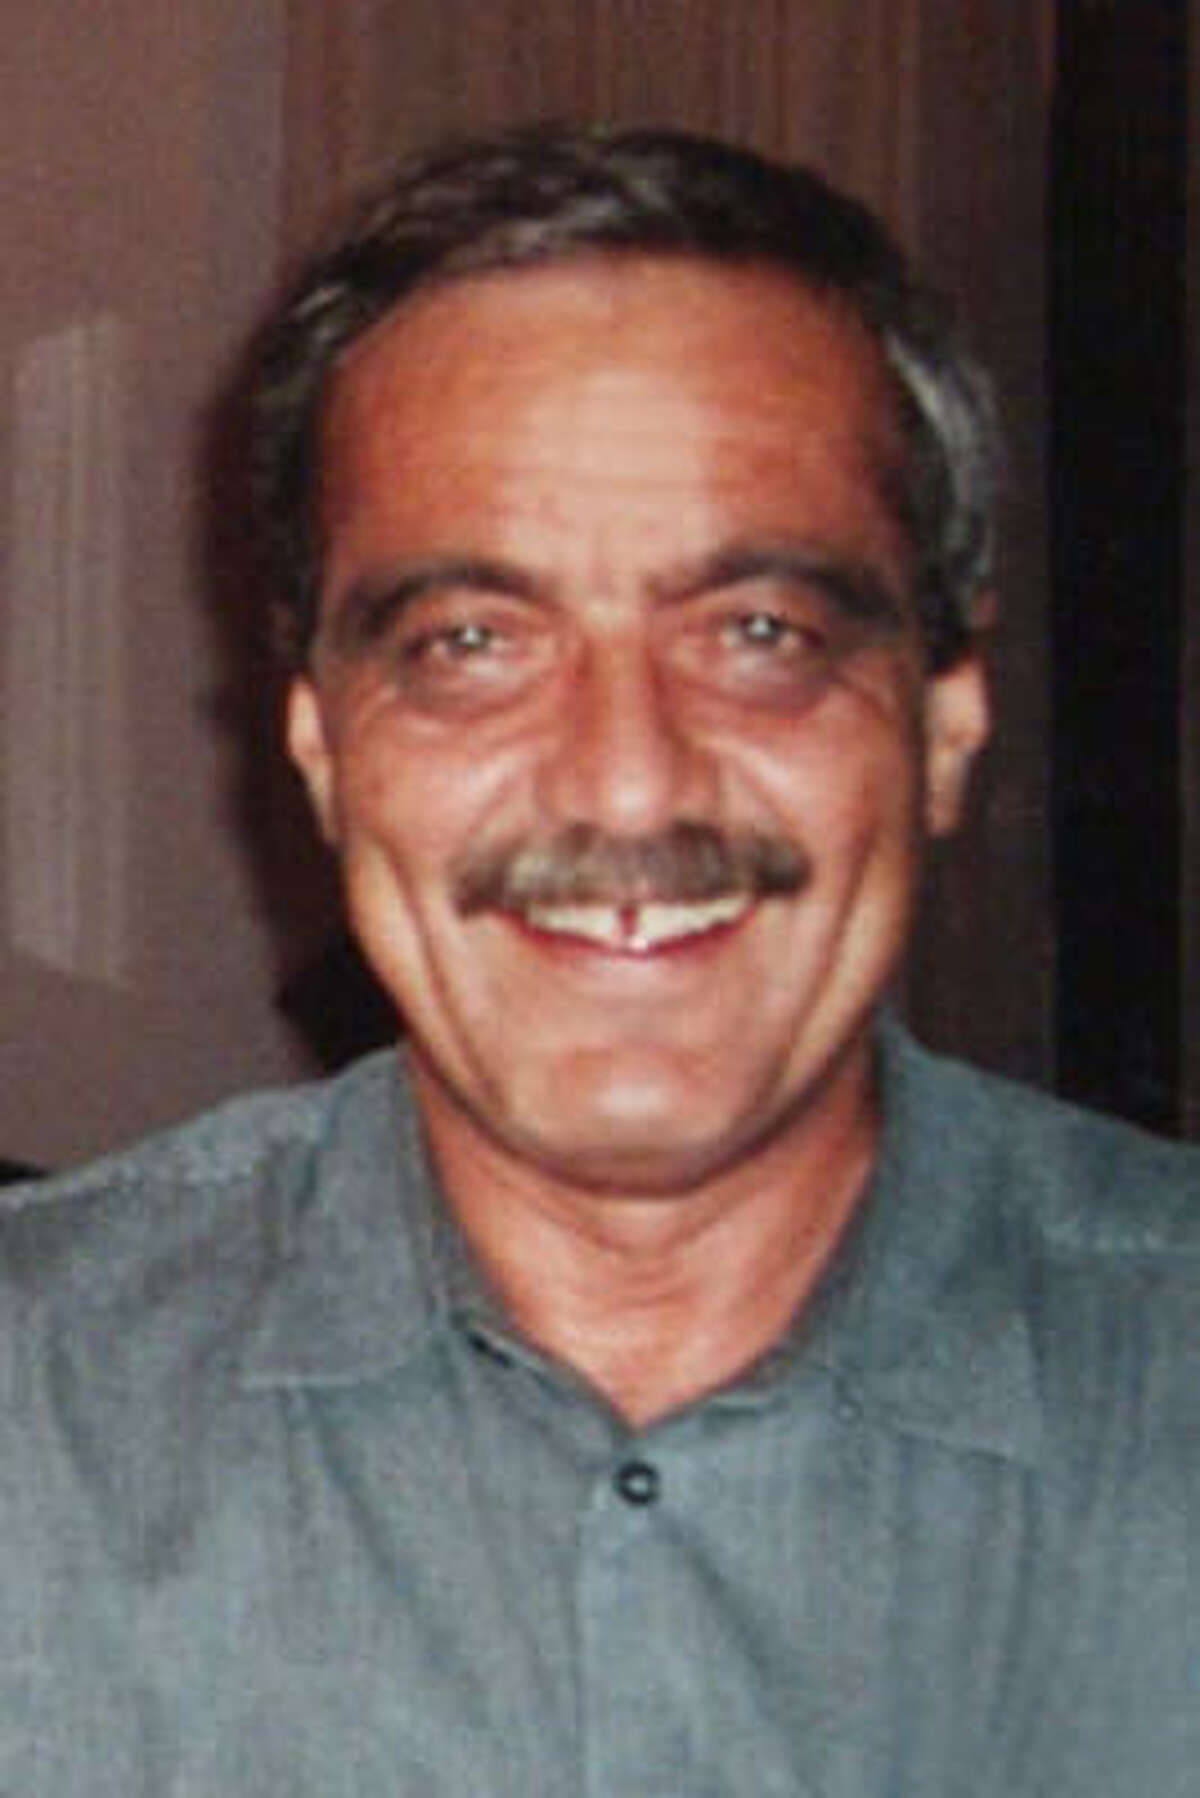 Branislav Radovancevic was a physician and researcher at the Texas Heart Institute.